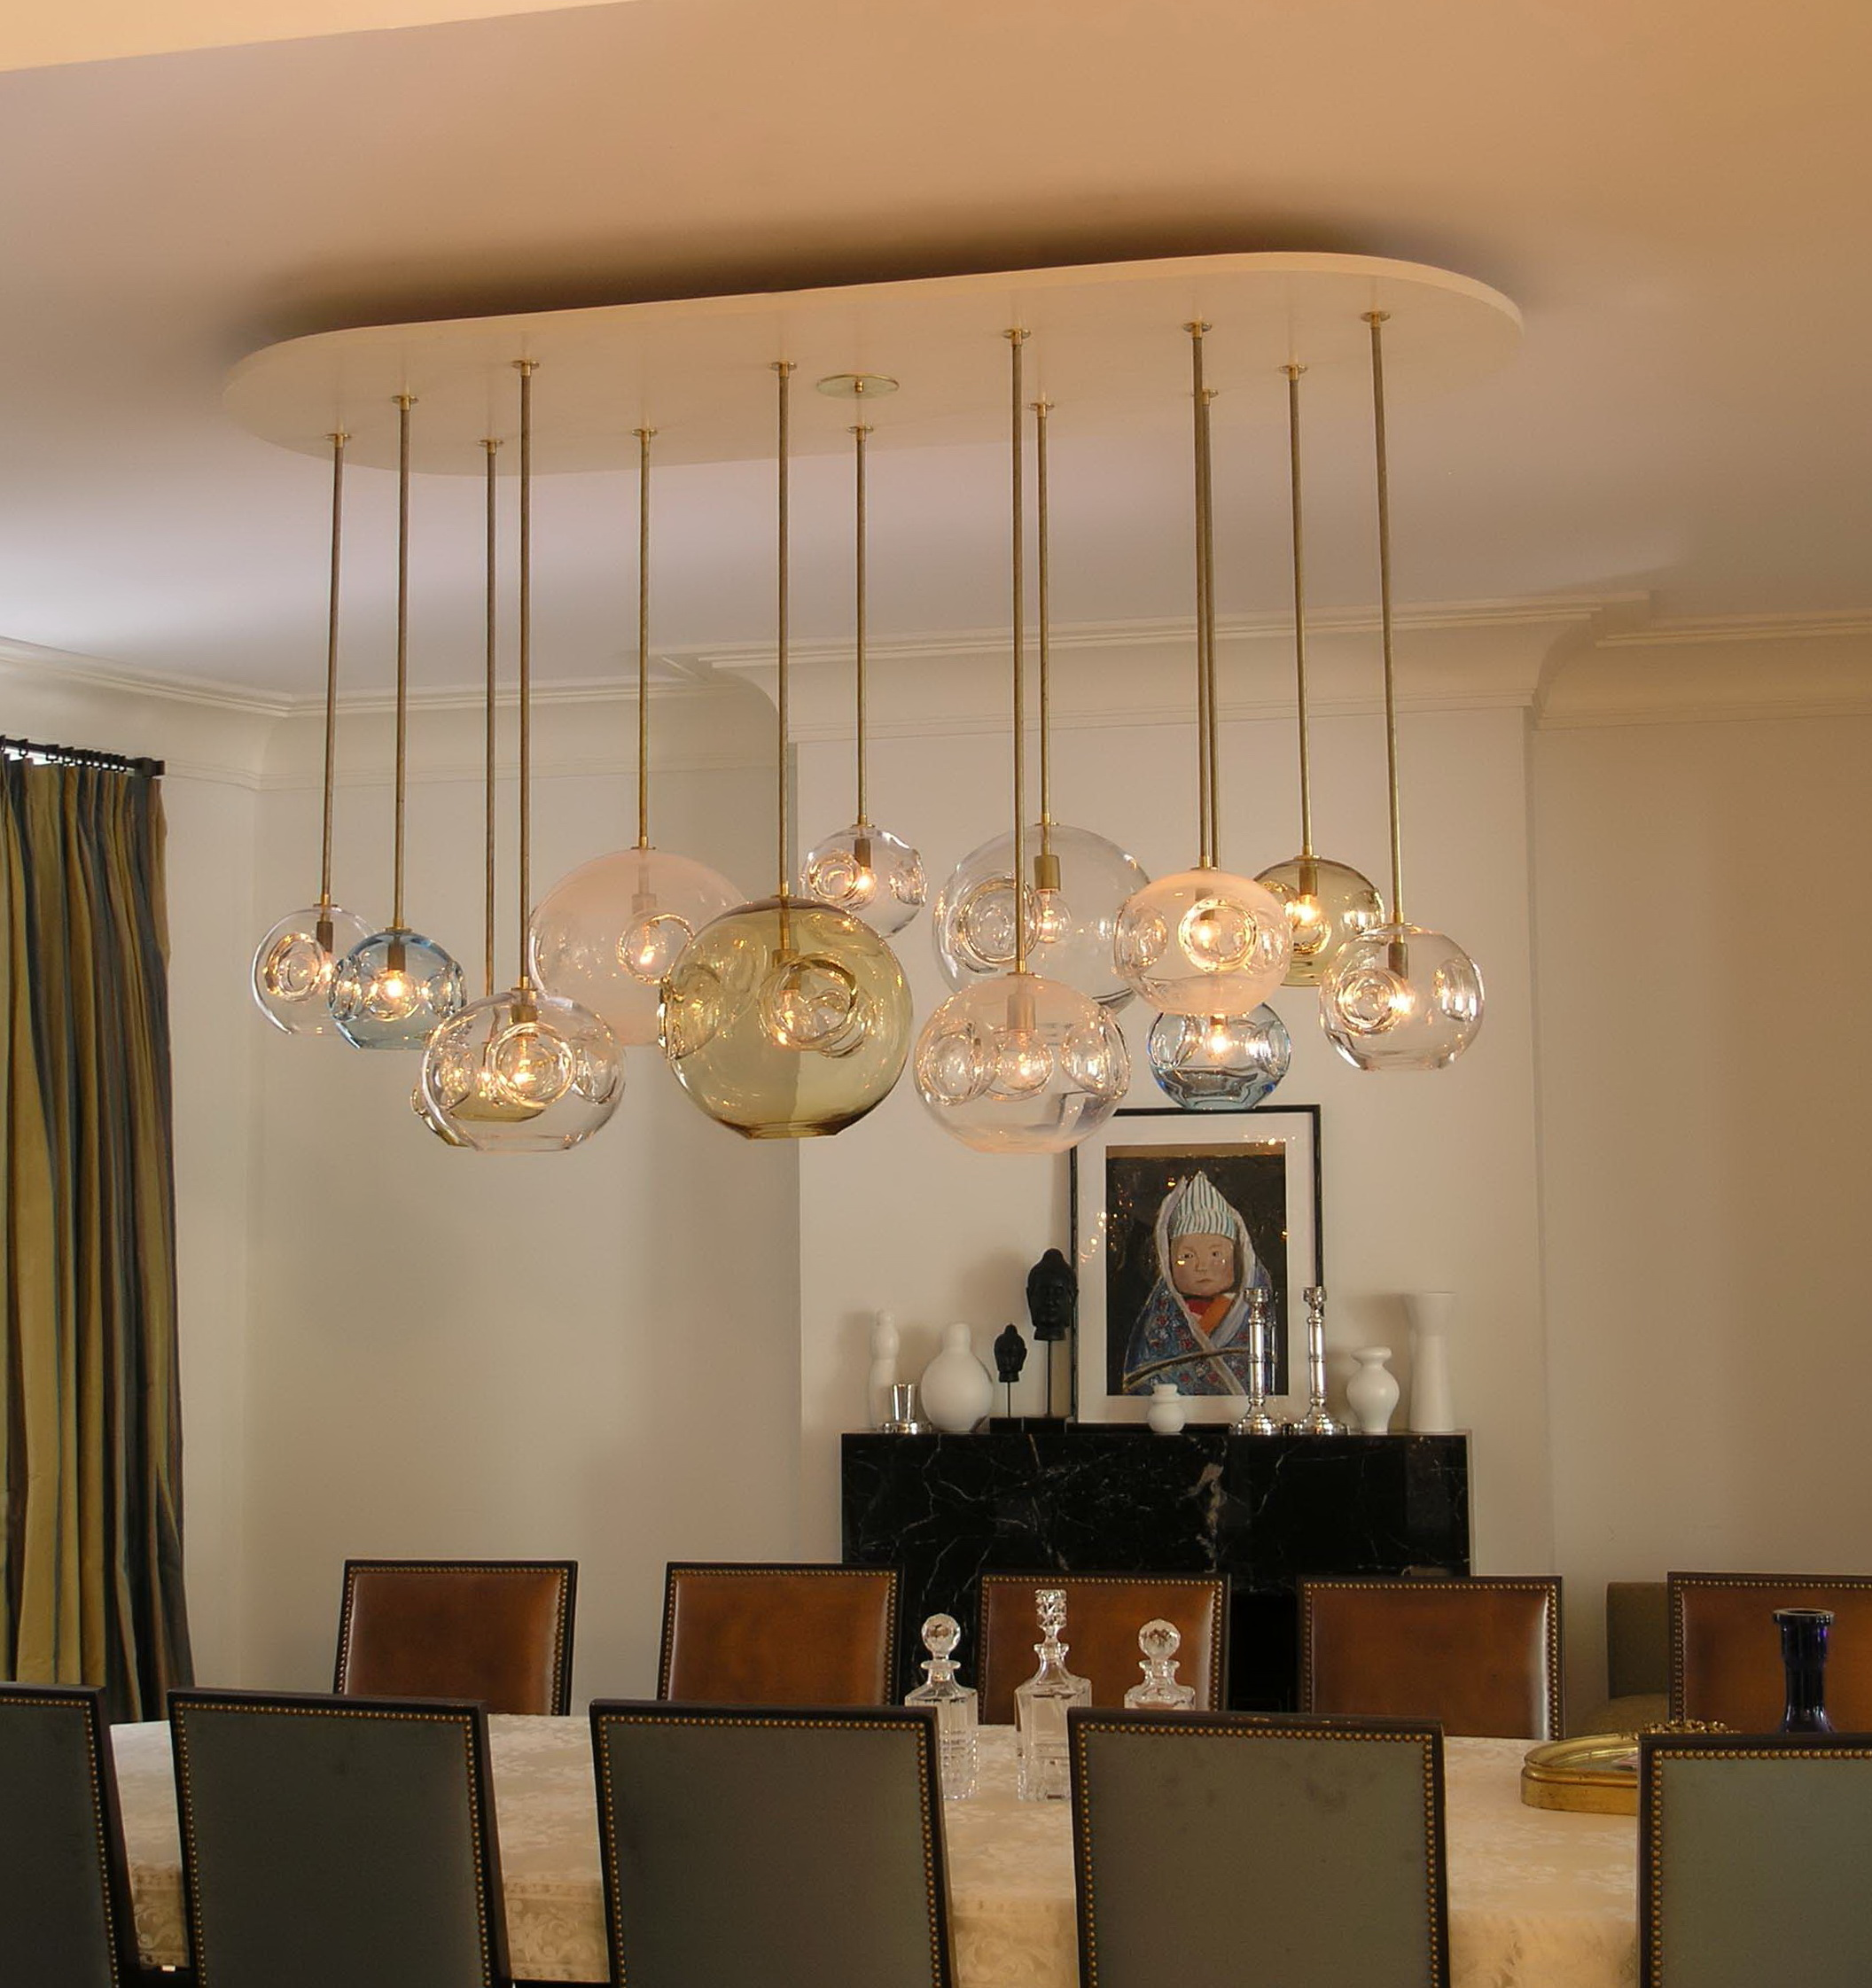 Modern contemporary dining room chandeliers home design ideas - Dining room chandelier contemporary style ...